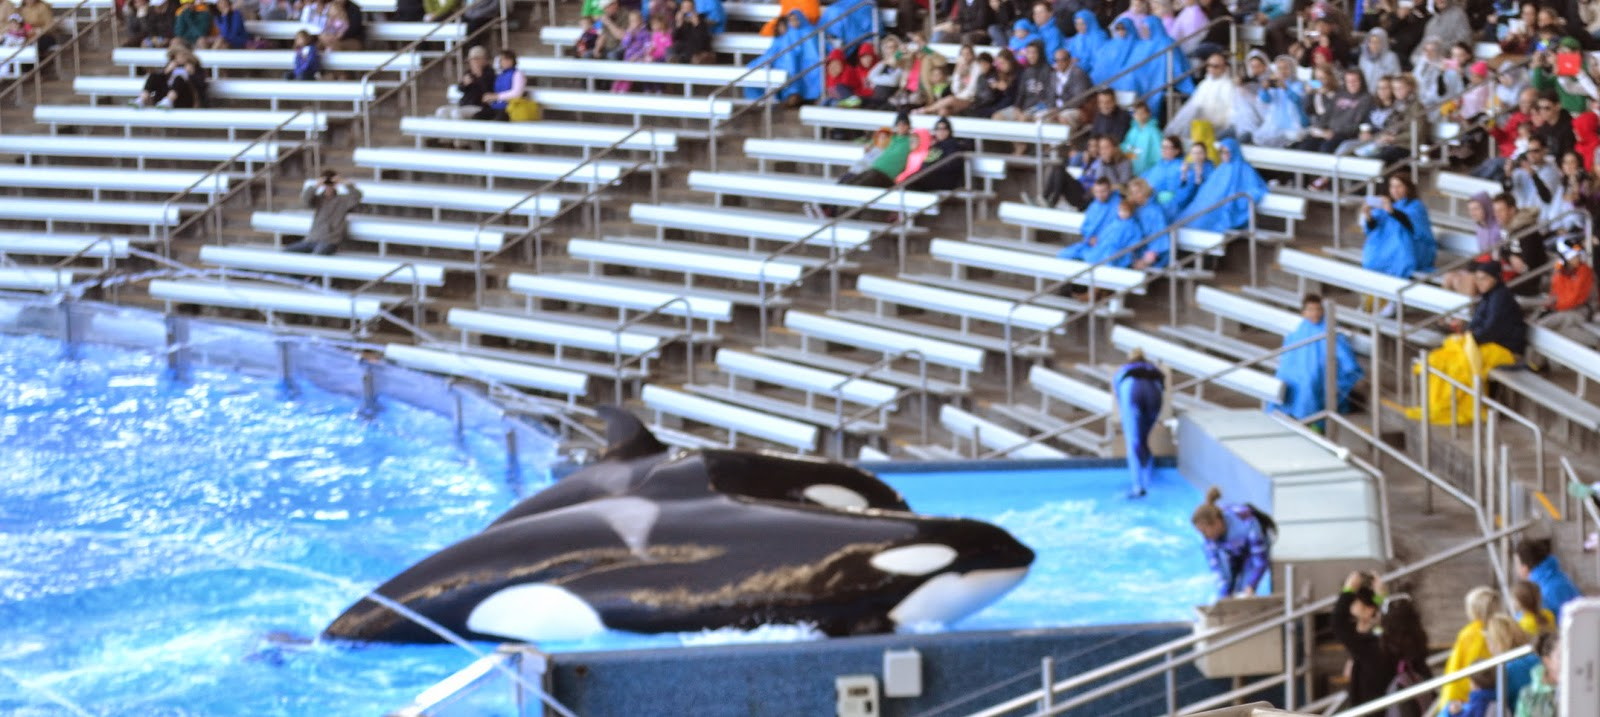 Killer whales show at Seaworld Orlando